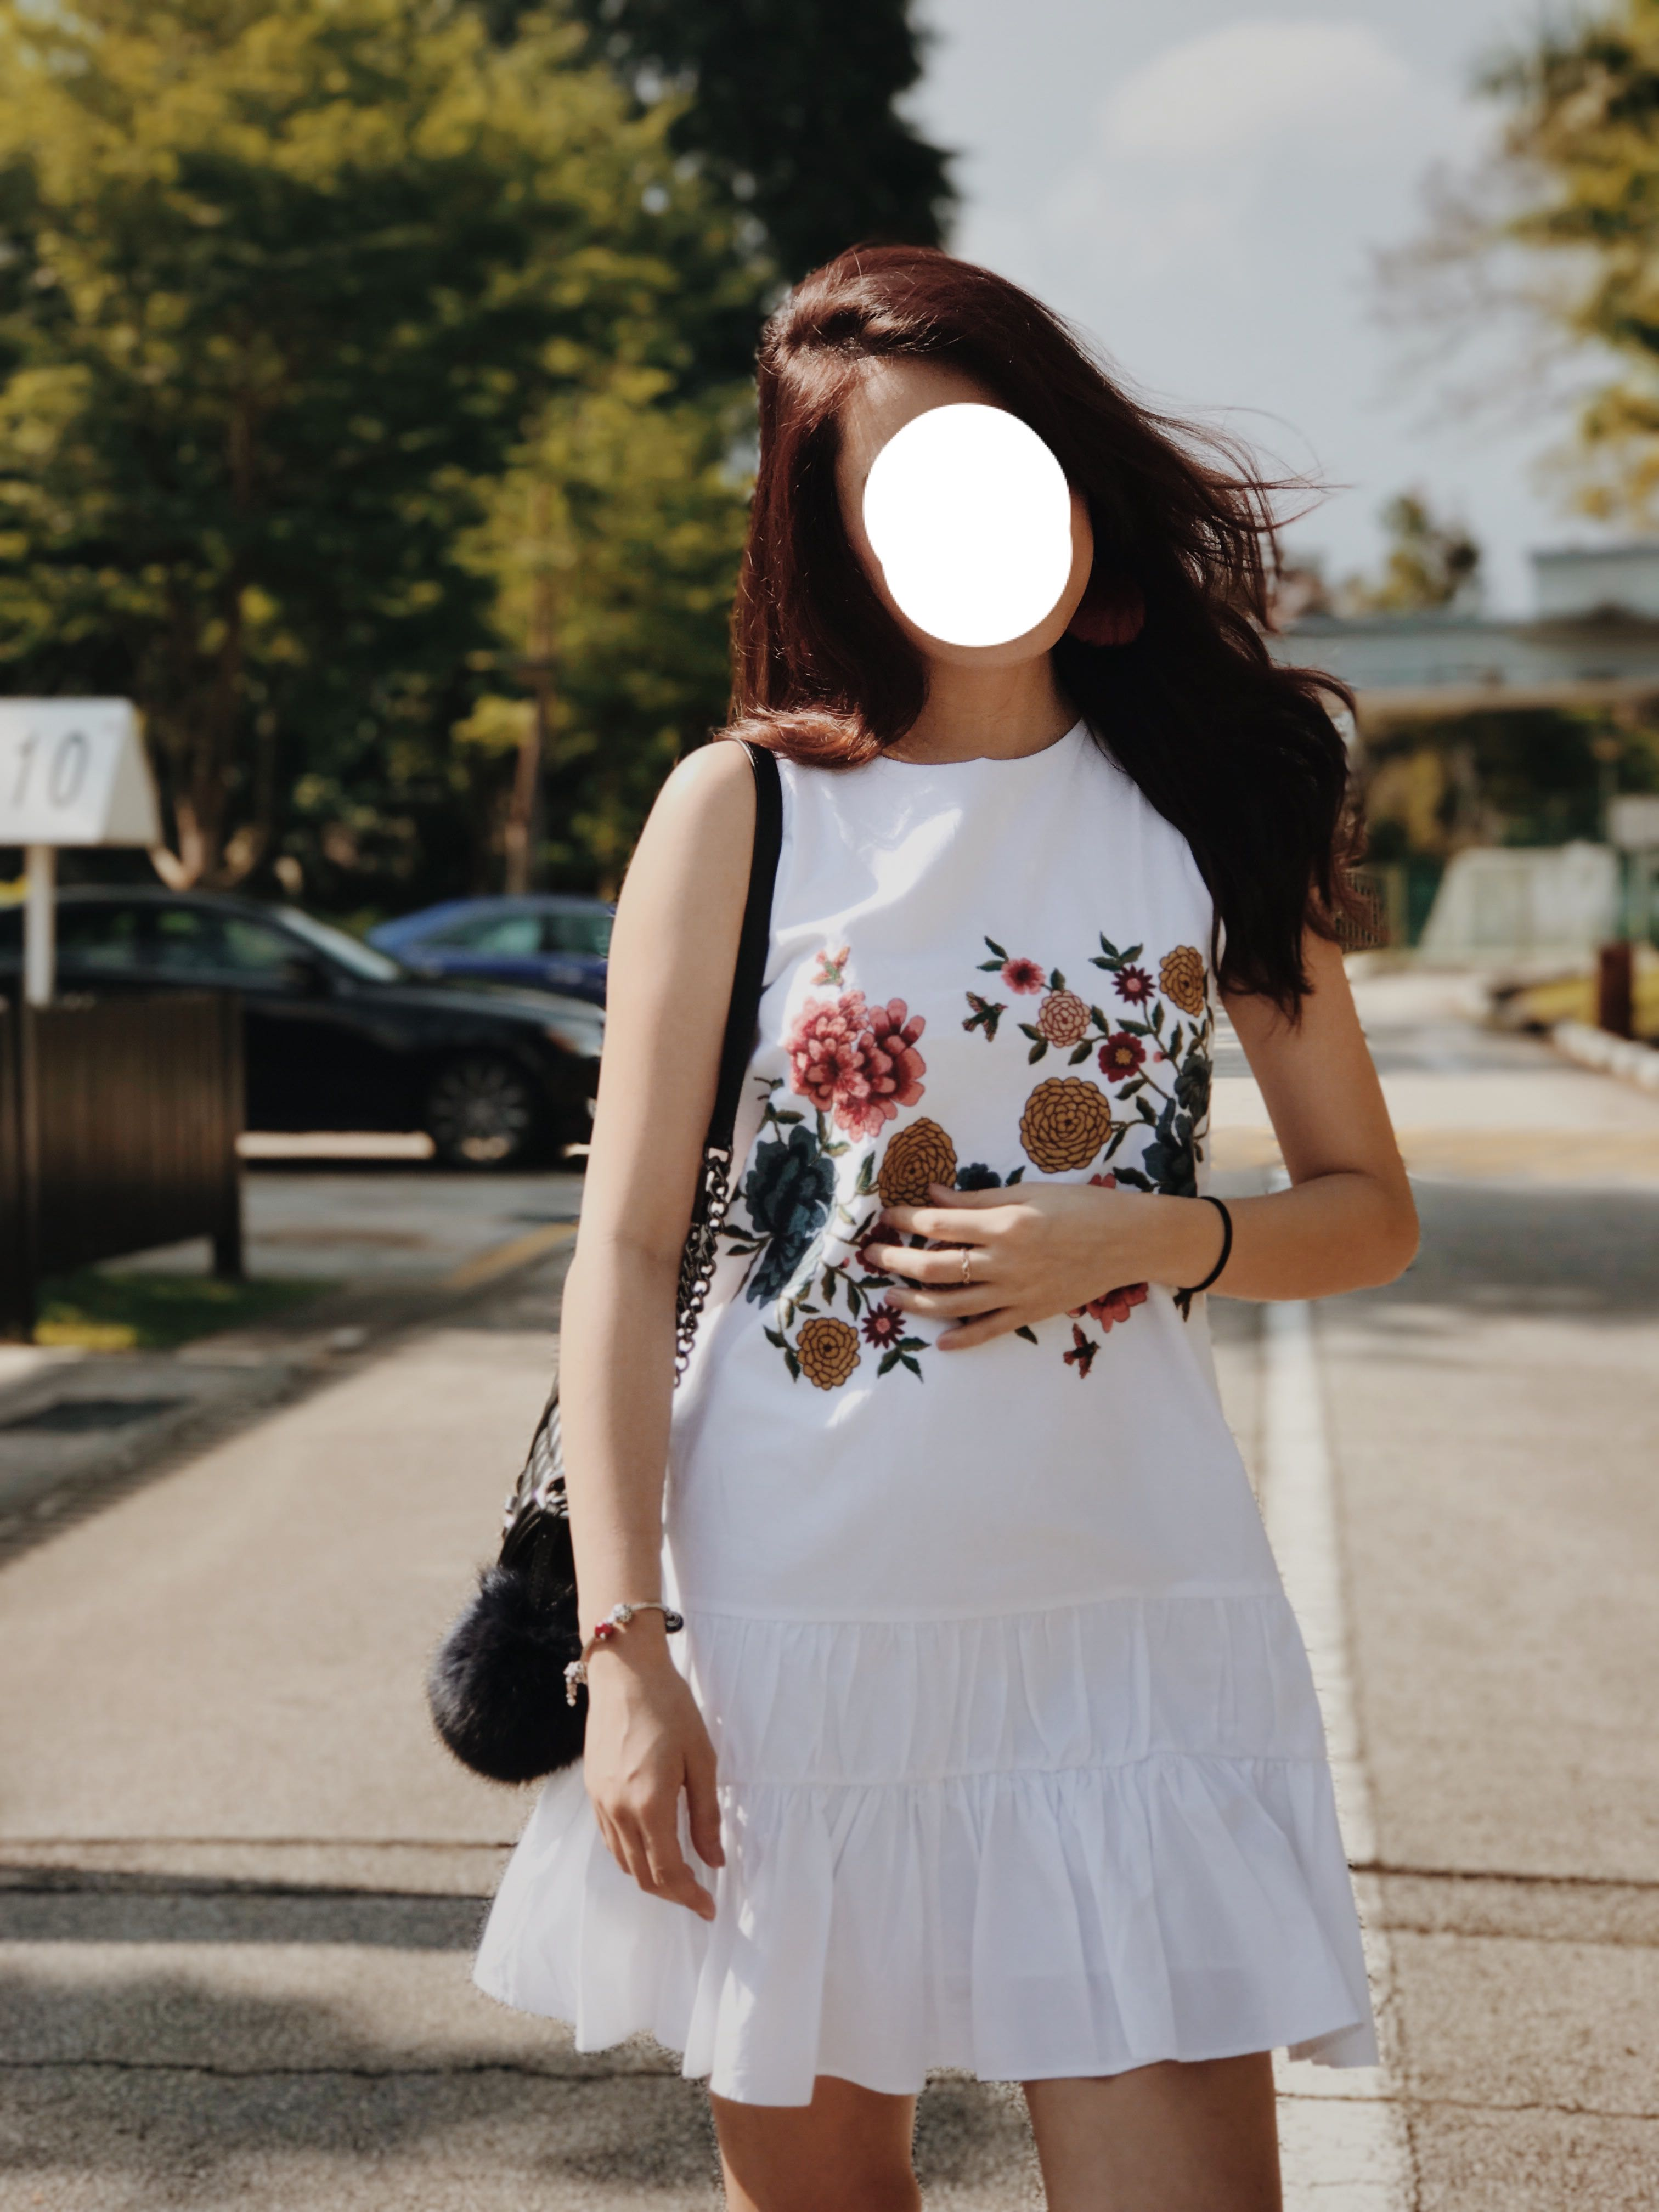 f3442604 ZARA white floral embroidered dress, Women's Fashion, Clothes ...